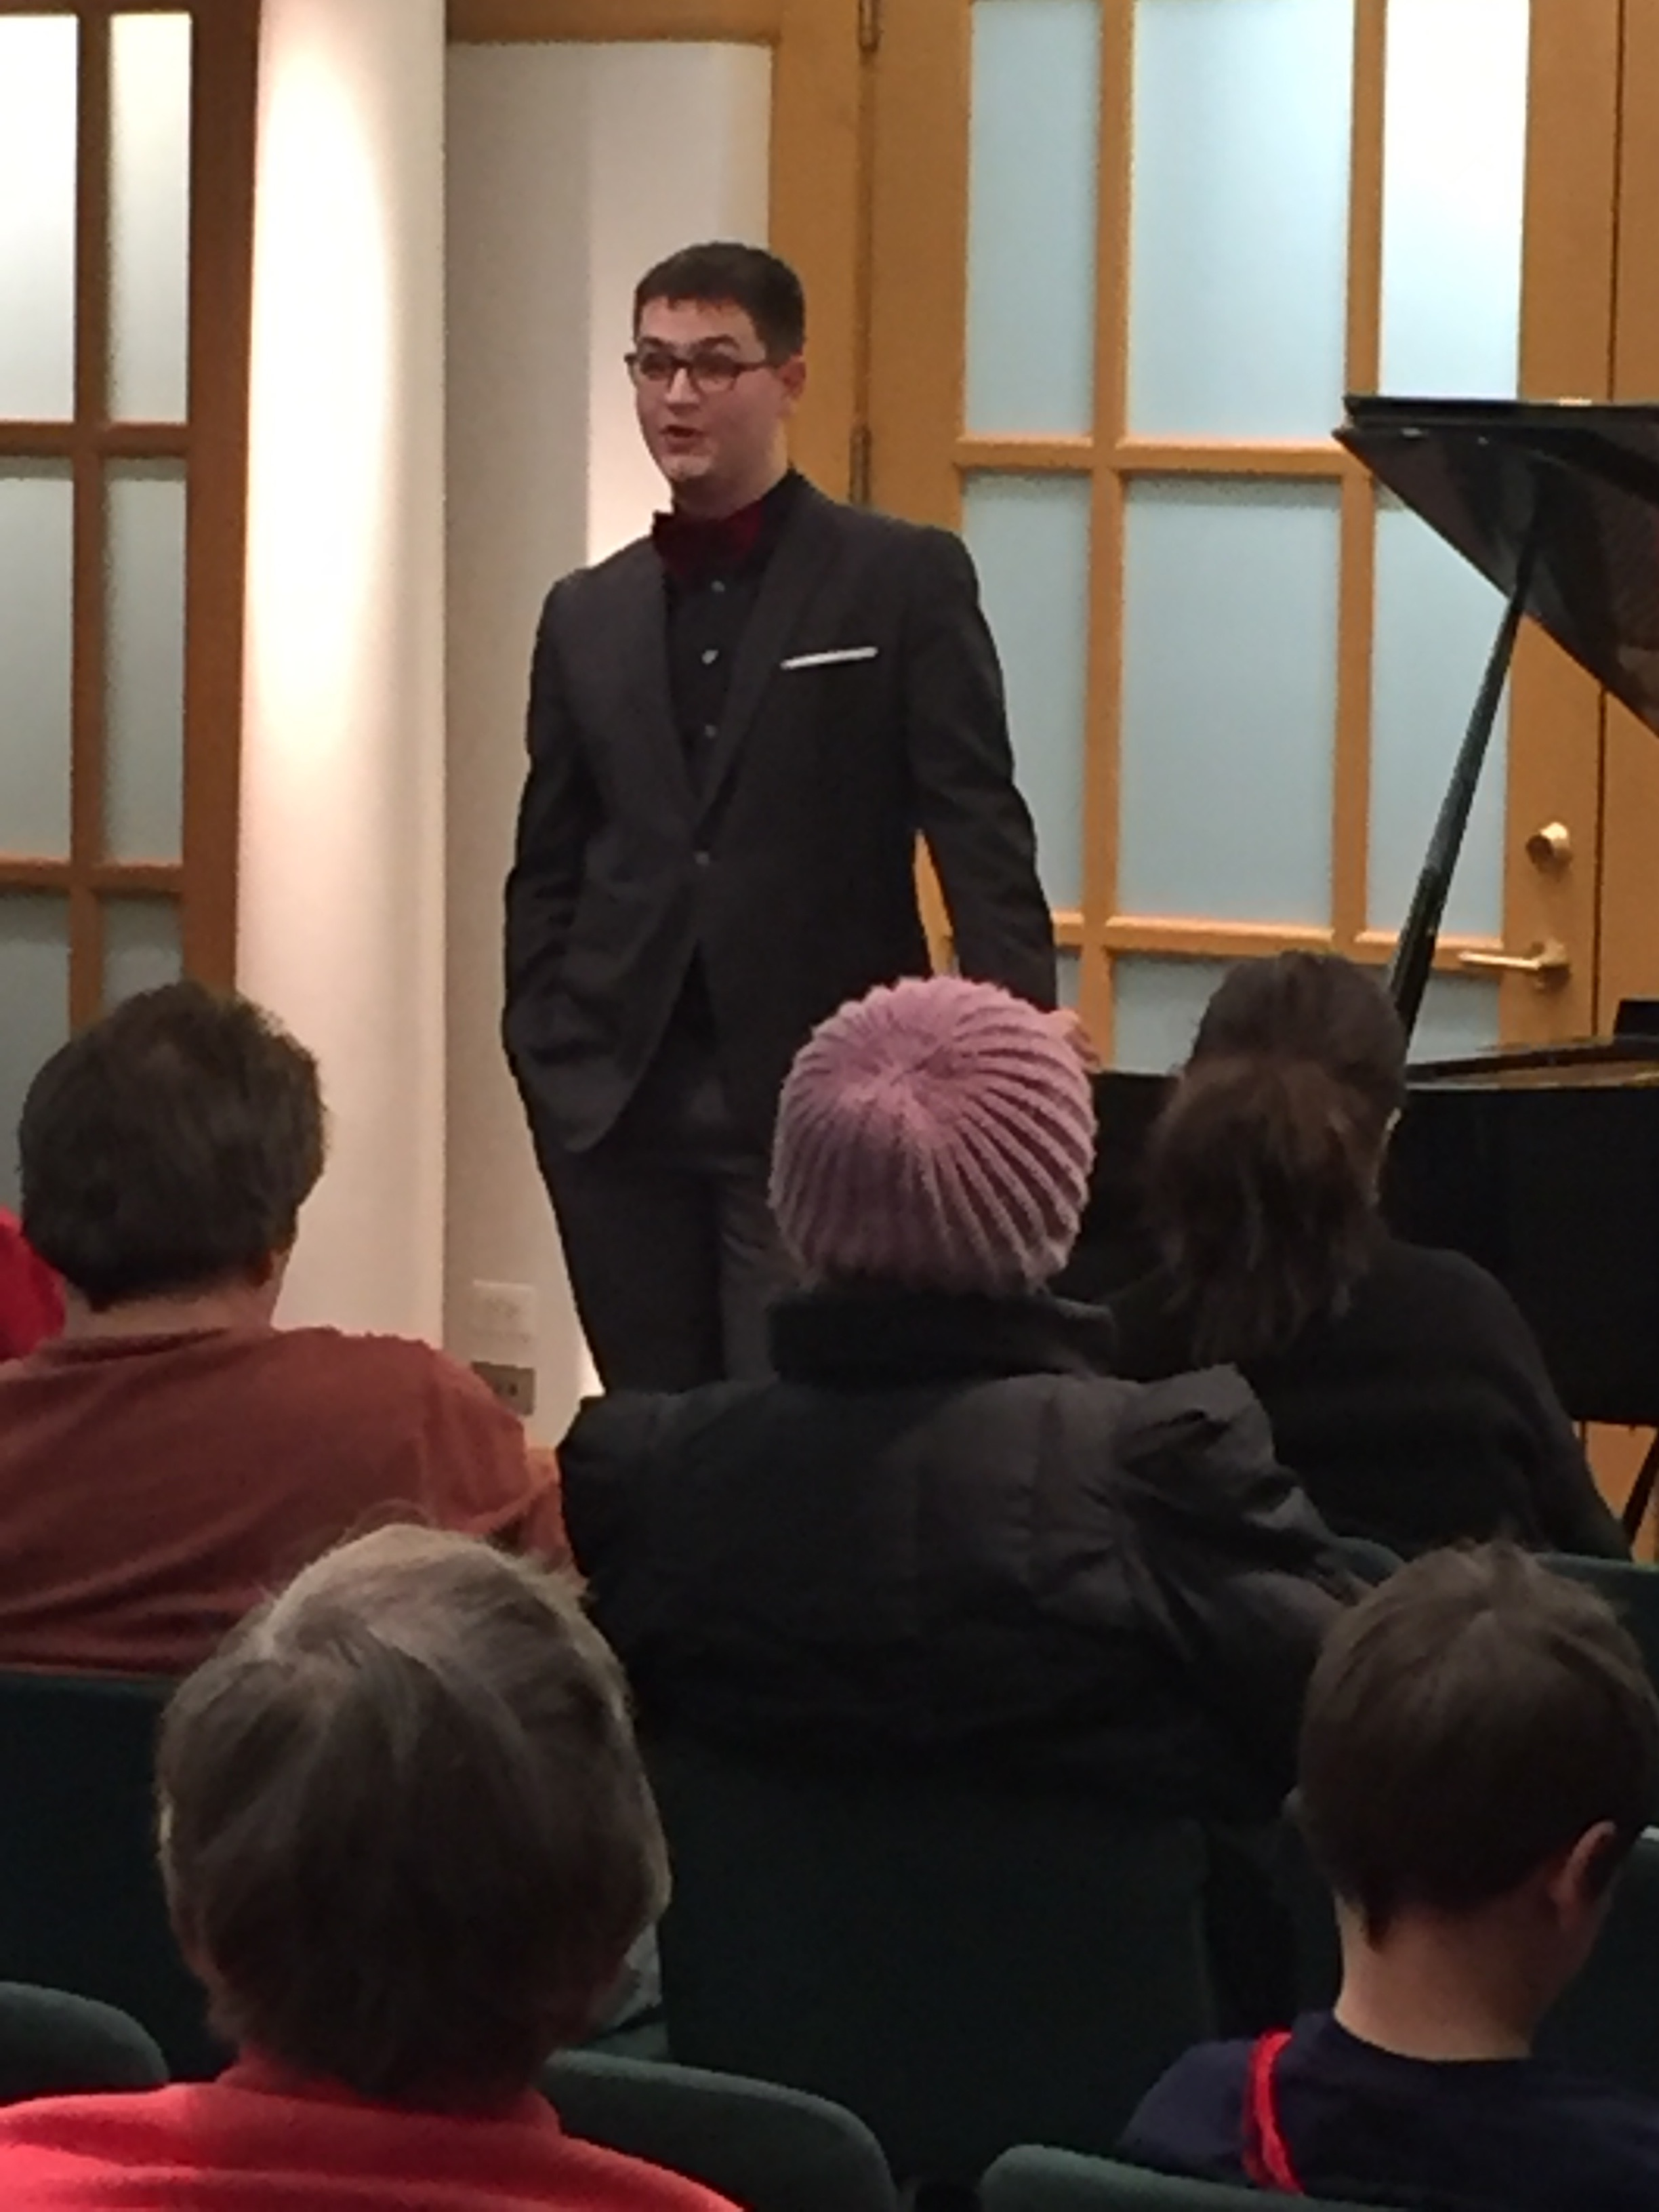 Ethan Valentin addresses the crowd at his piano recital